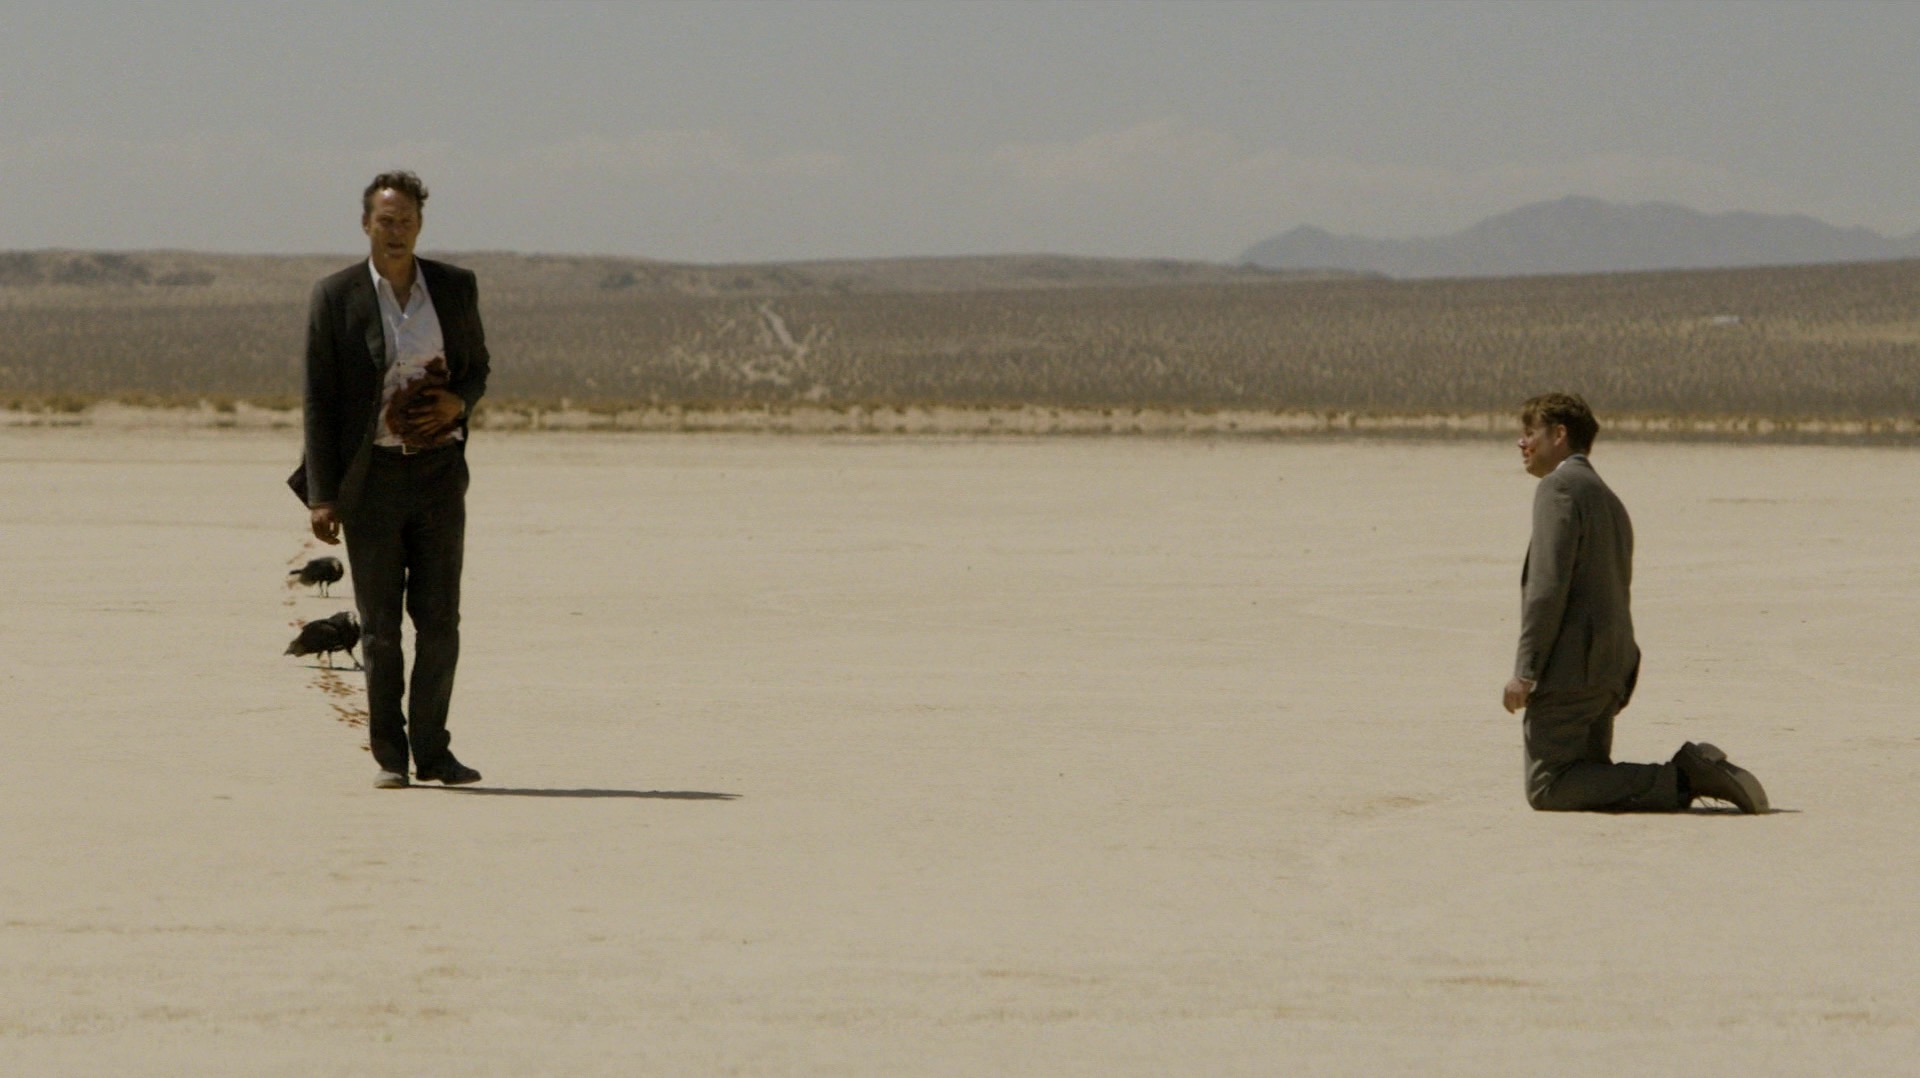 Frank walks by the man in the suit